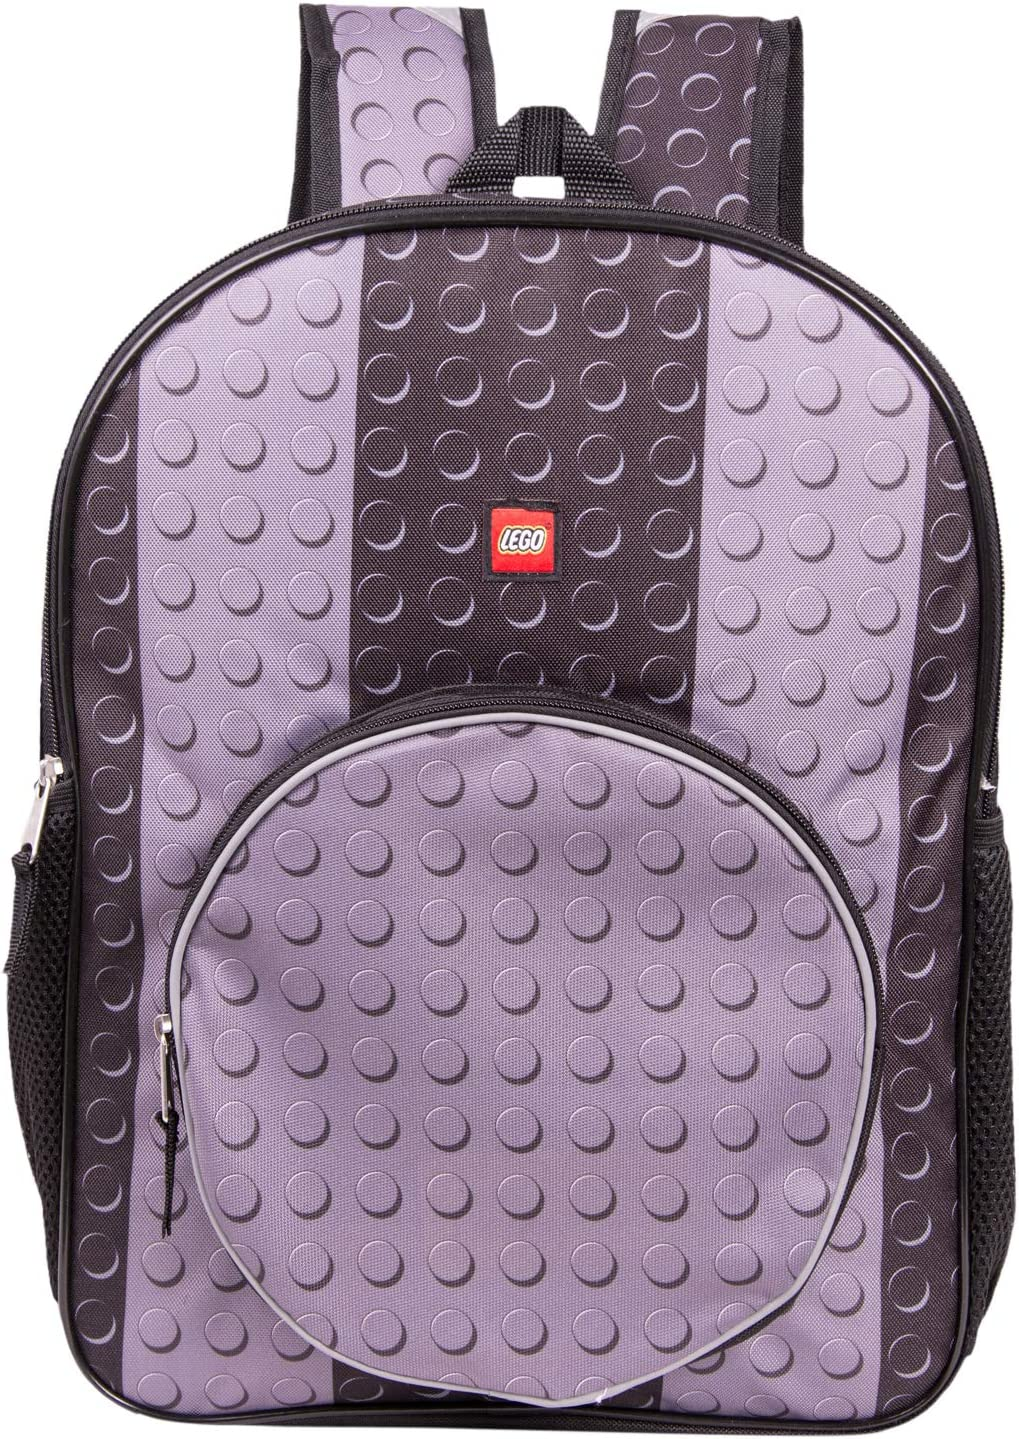 LEGO Classic Black Brick Backpack - Lego Backpack With Zippered Front Pocket (Black)